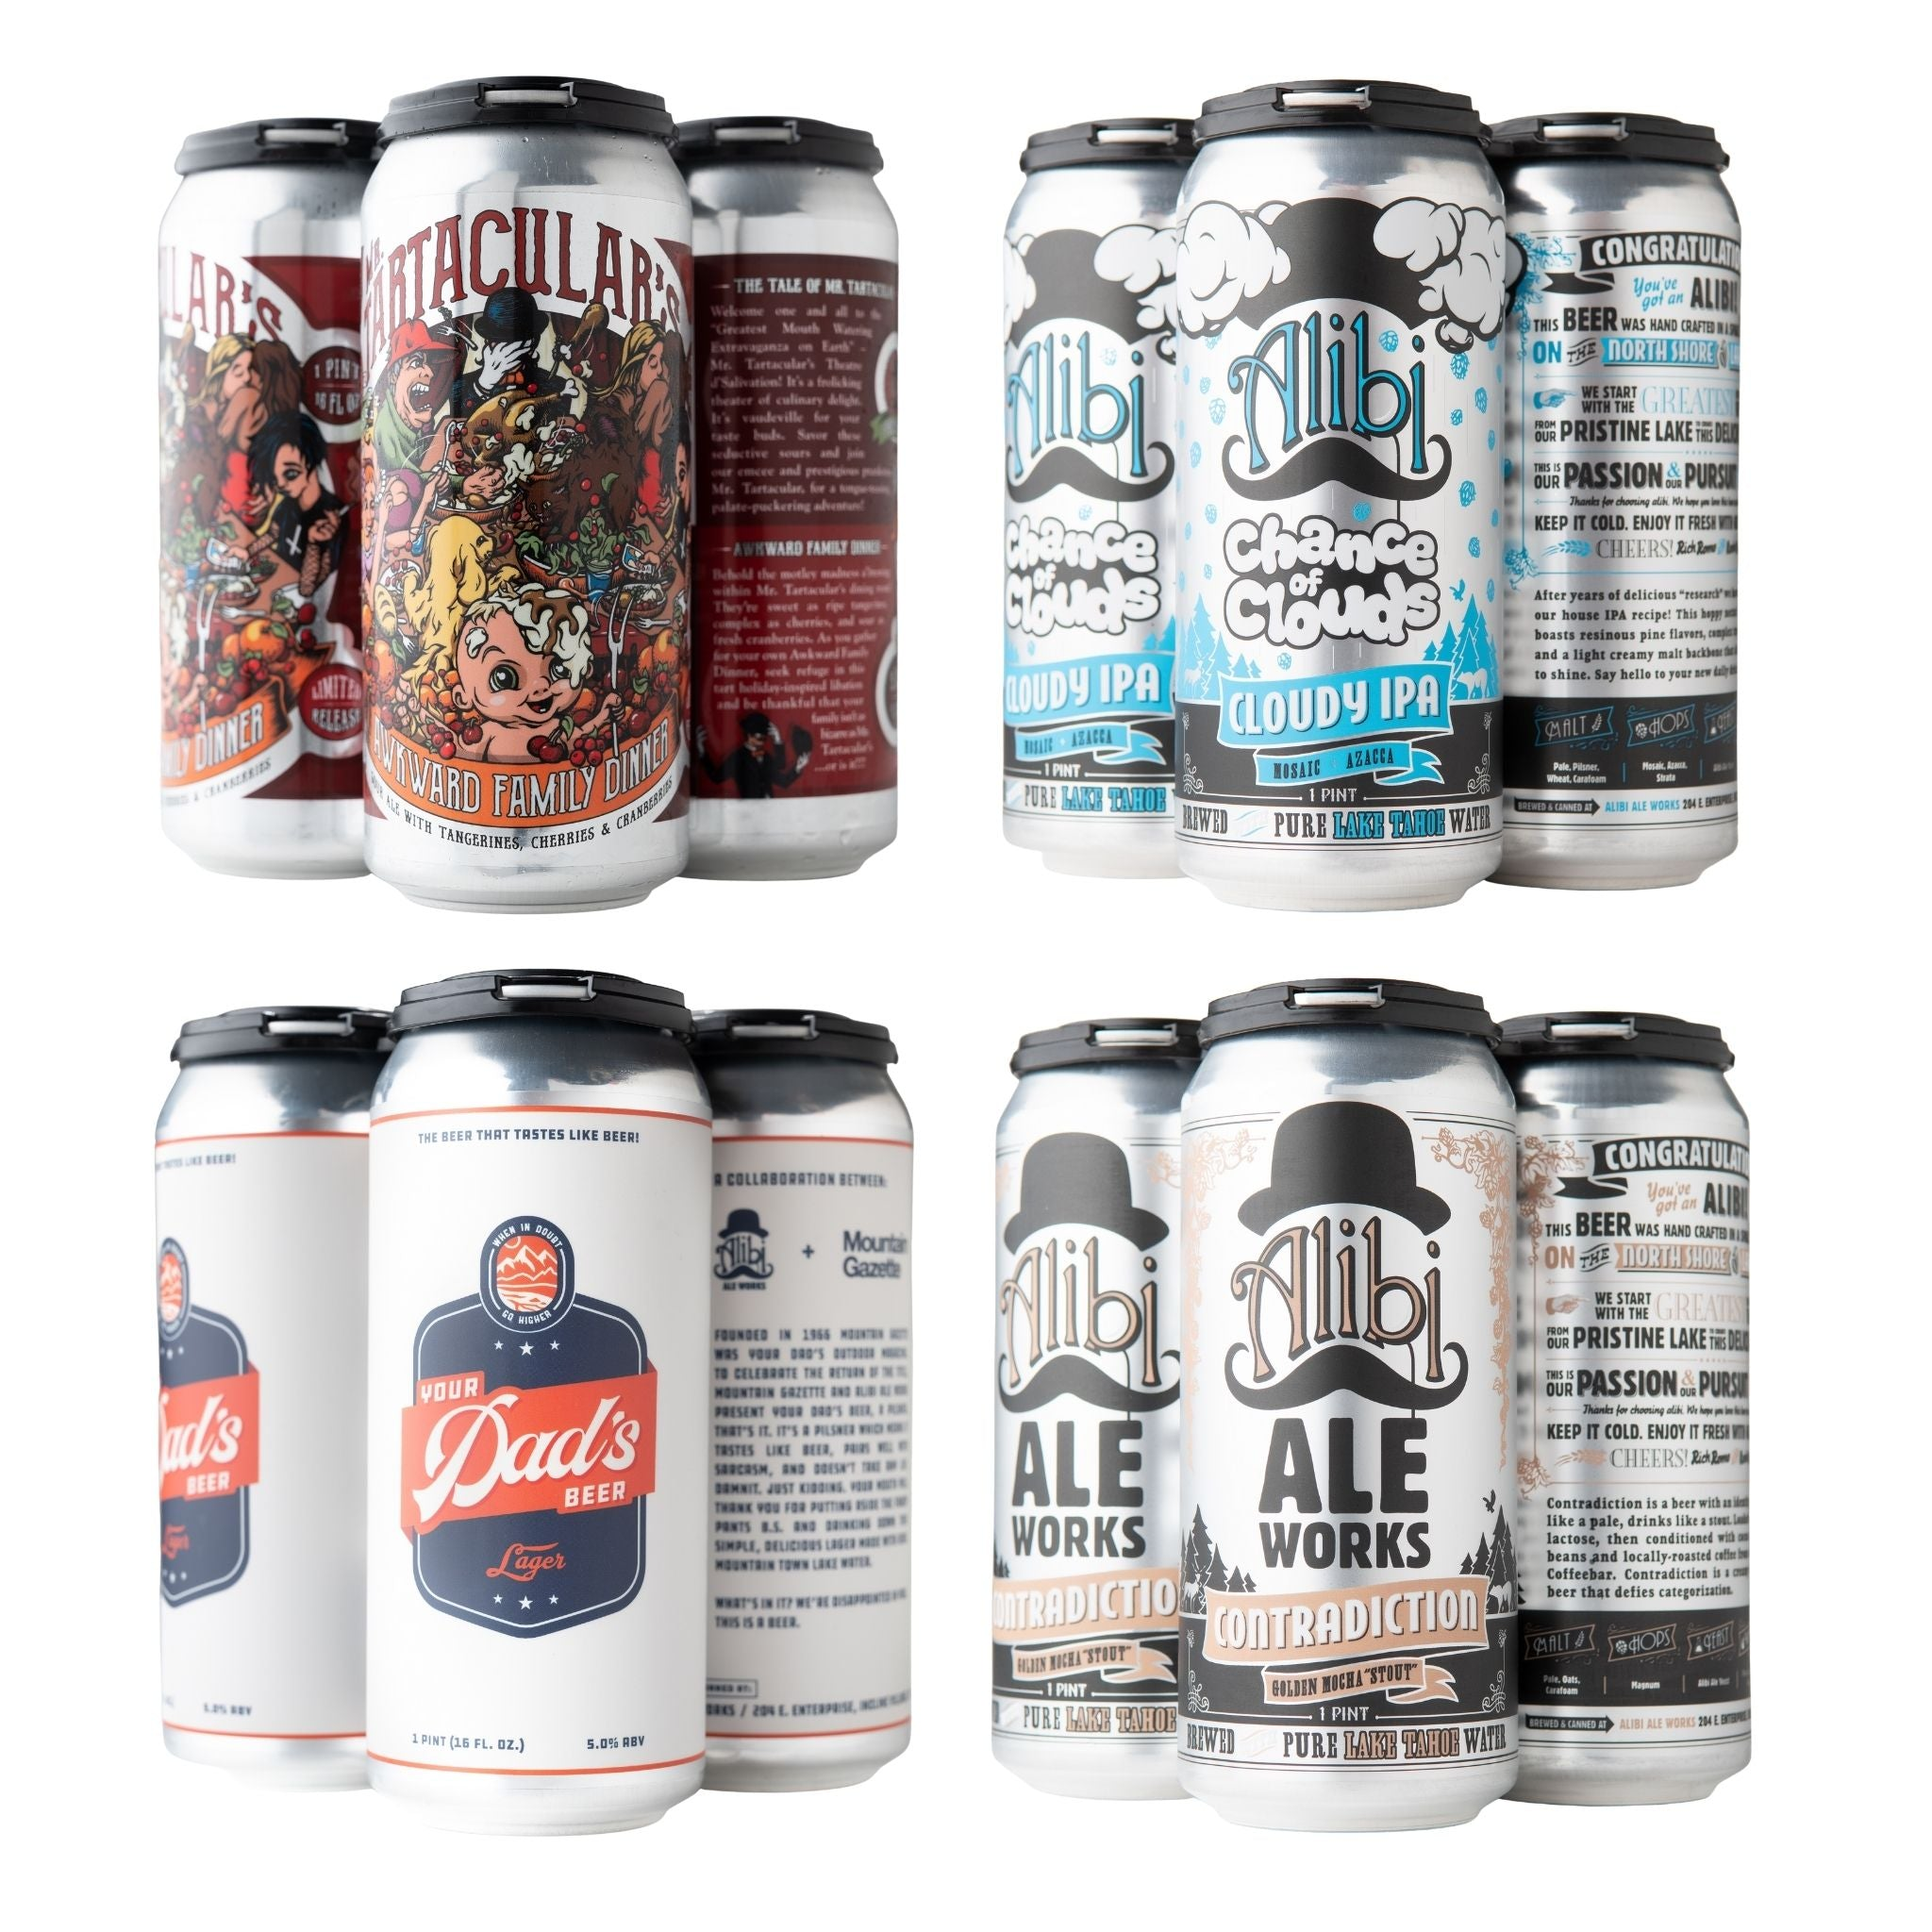 Beer of the Month Subscription (16 cans x 3 months)